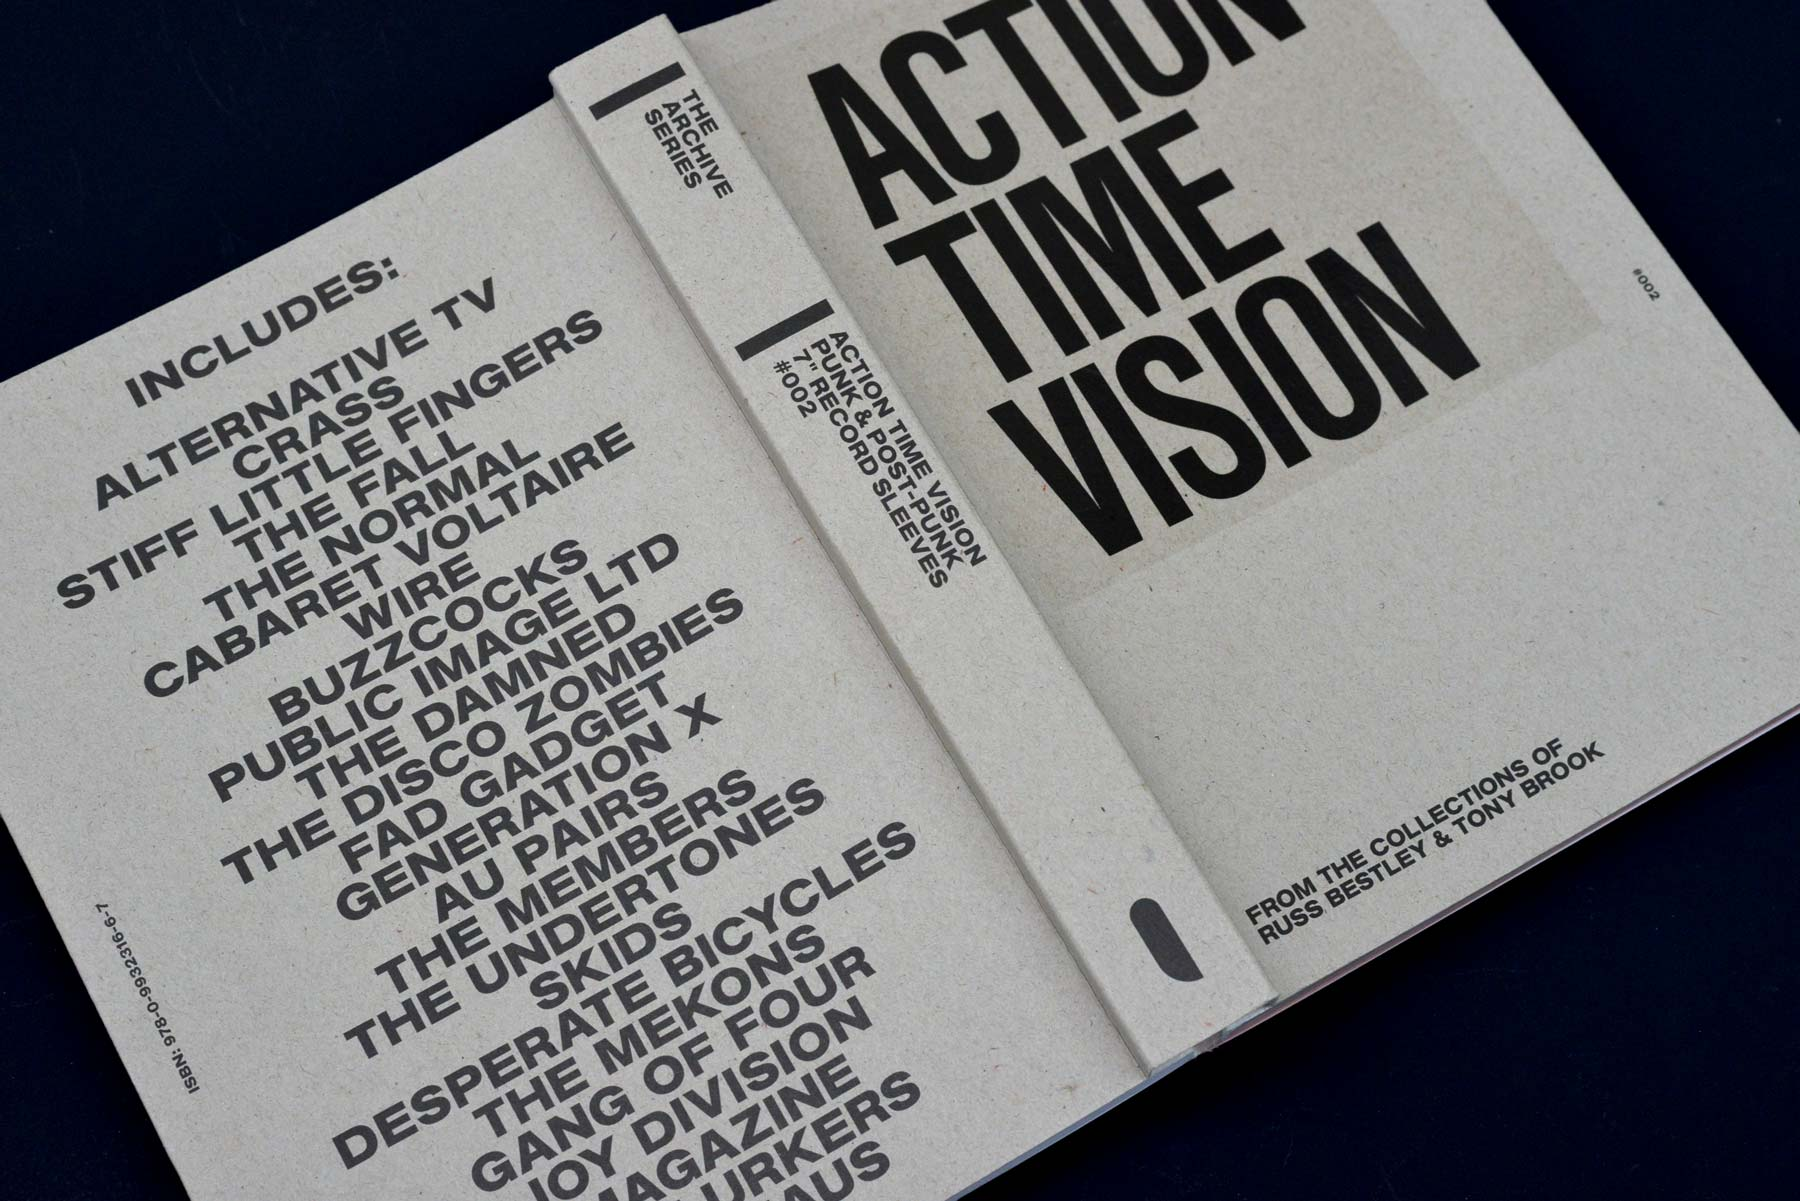 gdfs-library-action-time-vision